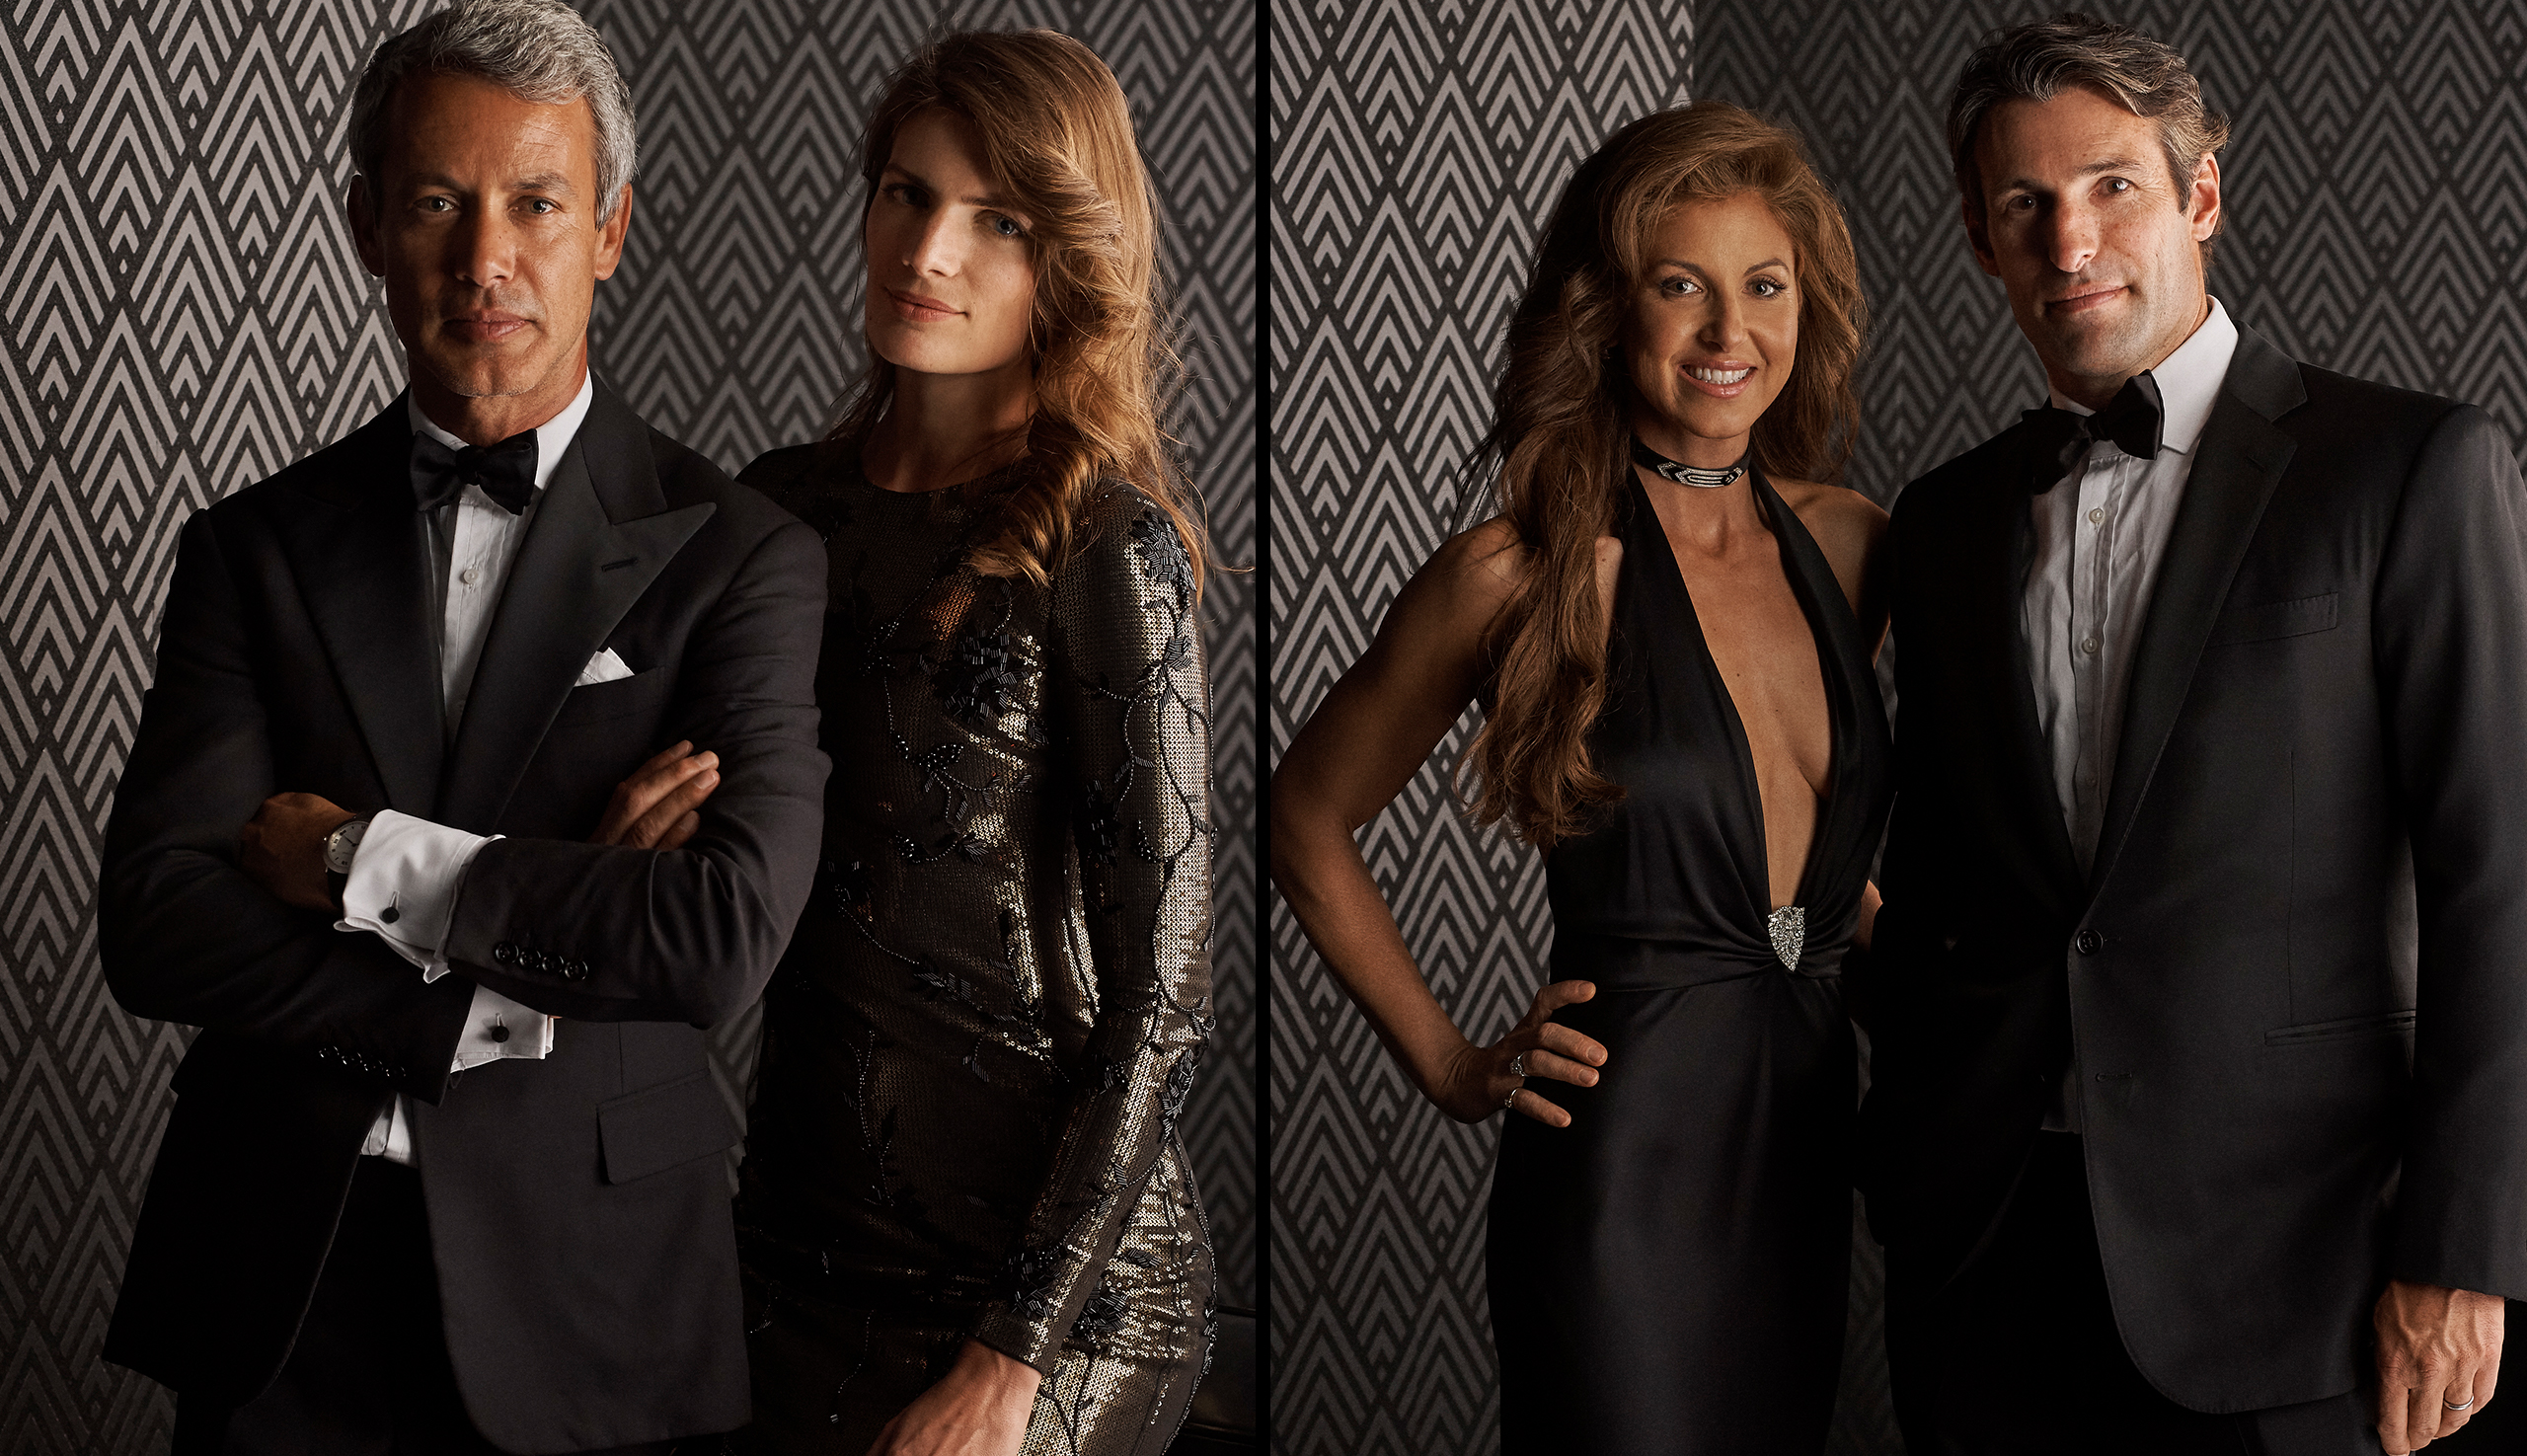 Left: Andrew Lauren and Natascha Schuetz; Right: Dylan Lauren and Paul Arrouet